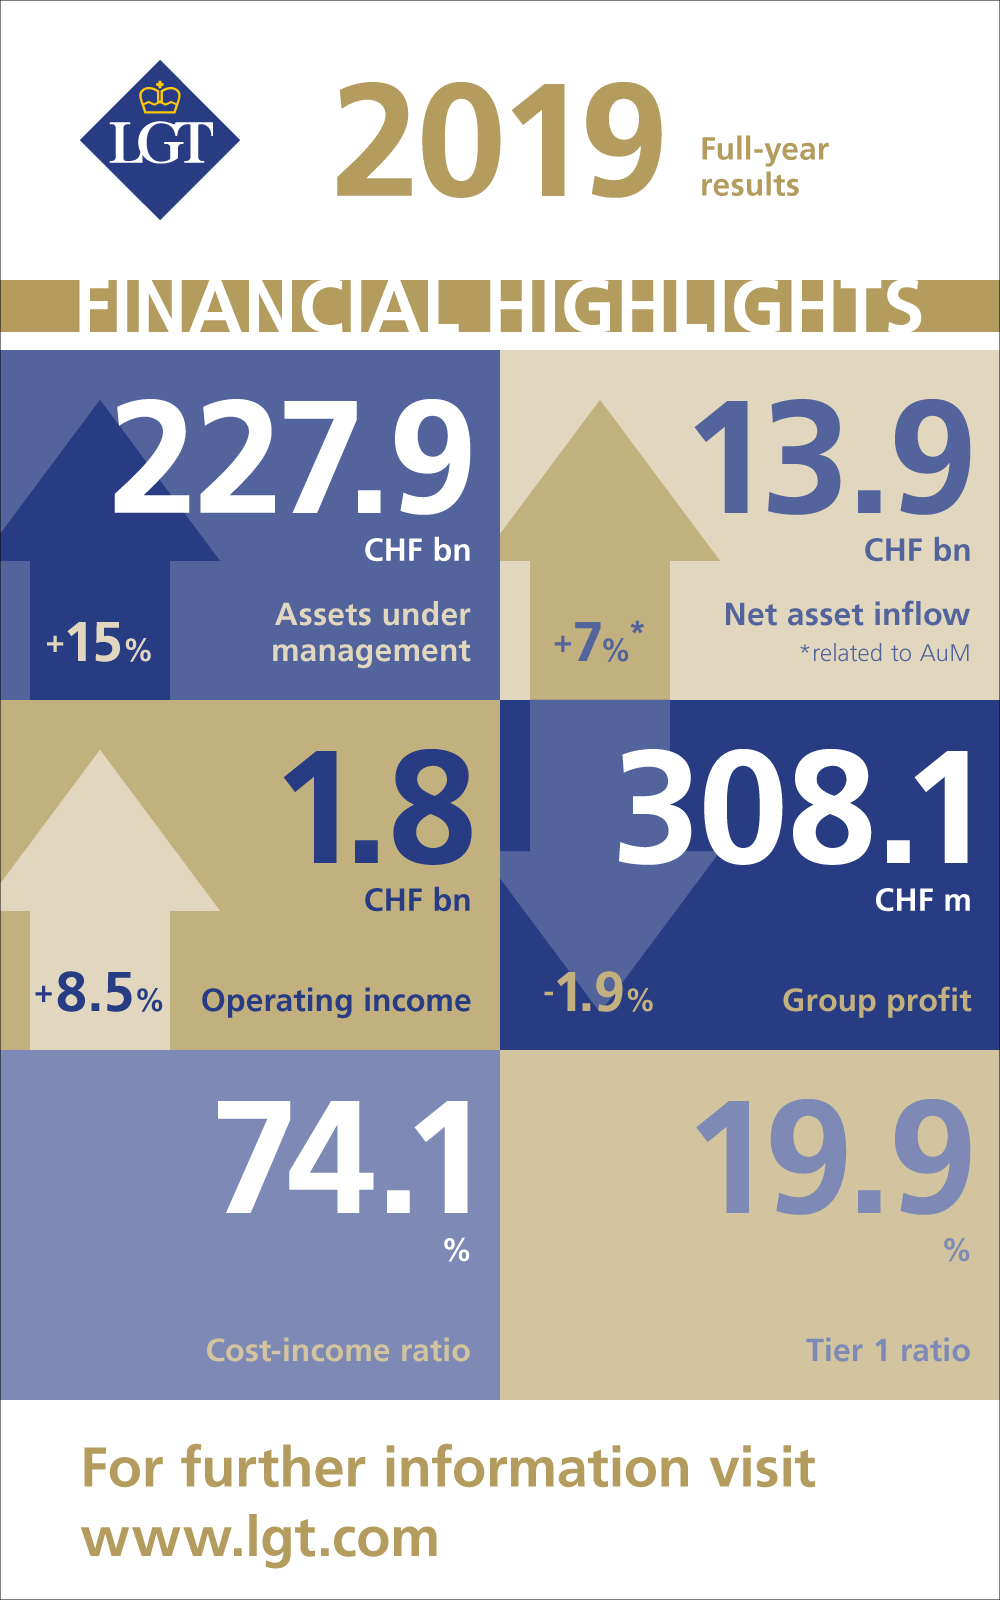 LGT Financial Highlights 2019